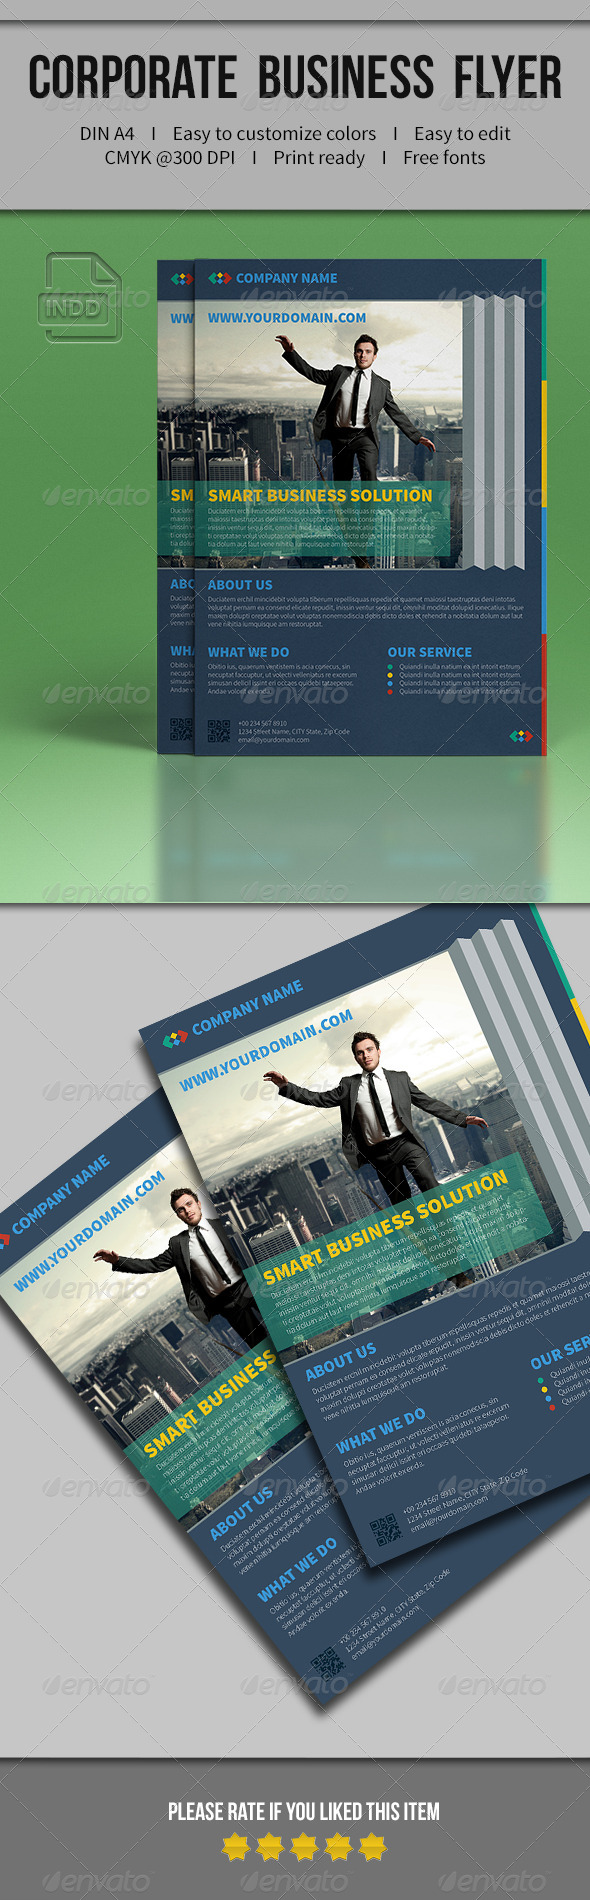 GraphicRiver Corporate Business Flyer 01 7896422